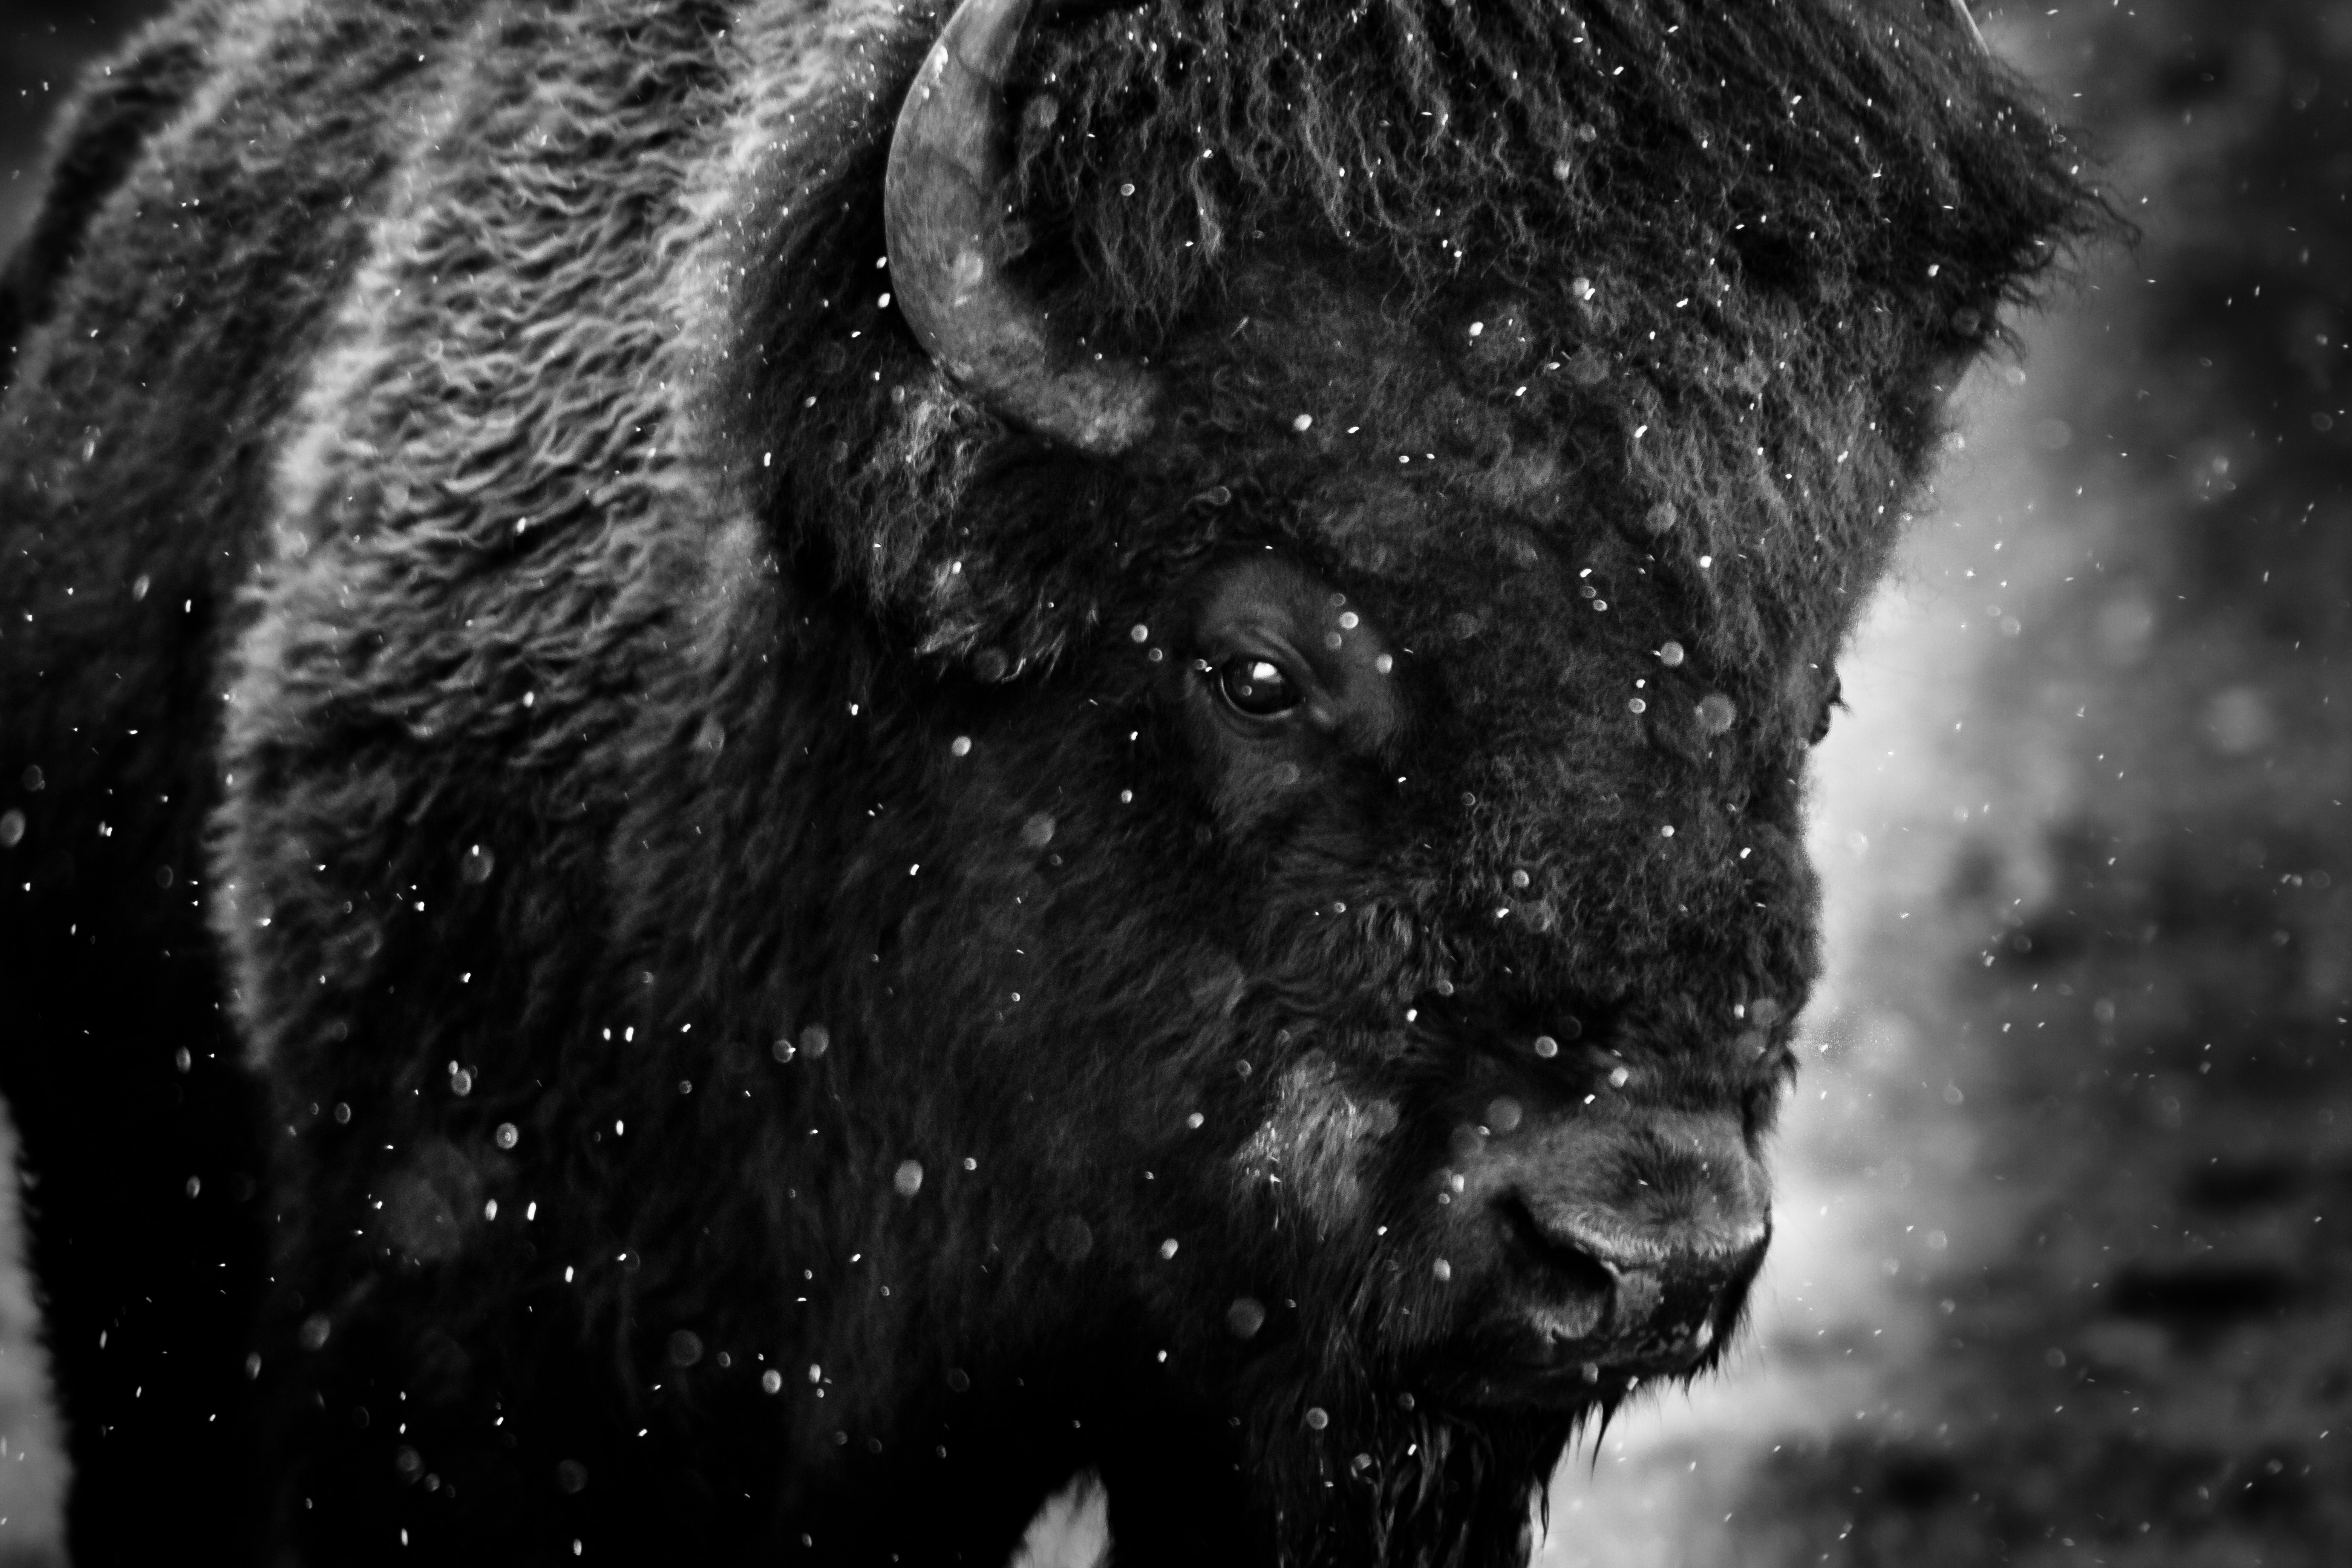 4: Bison in Snow